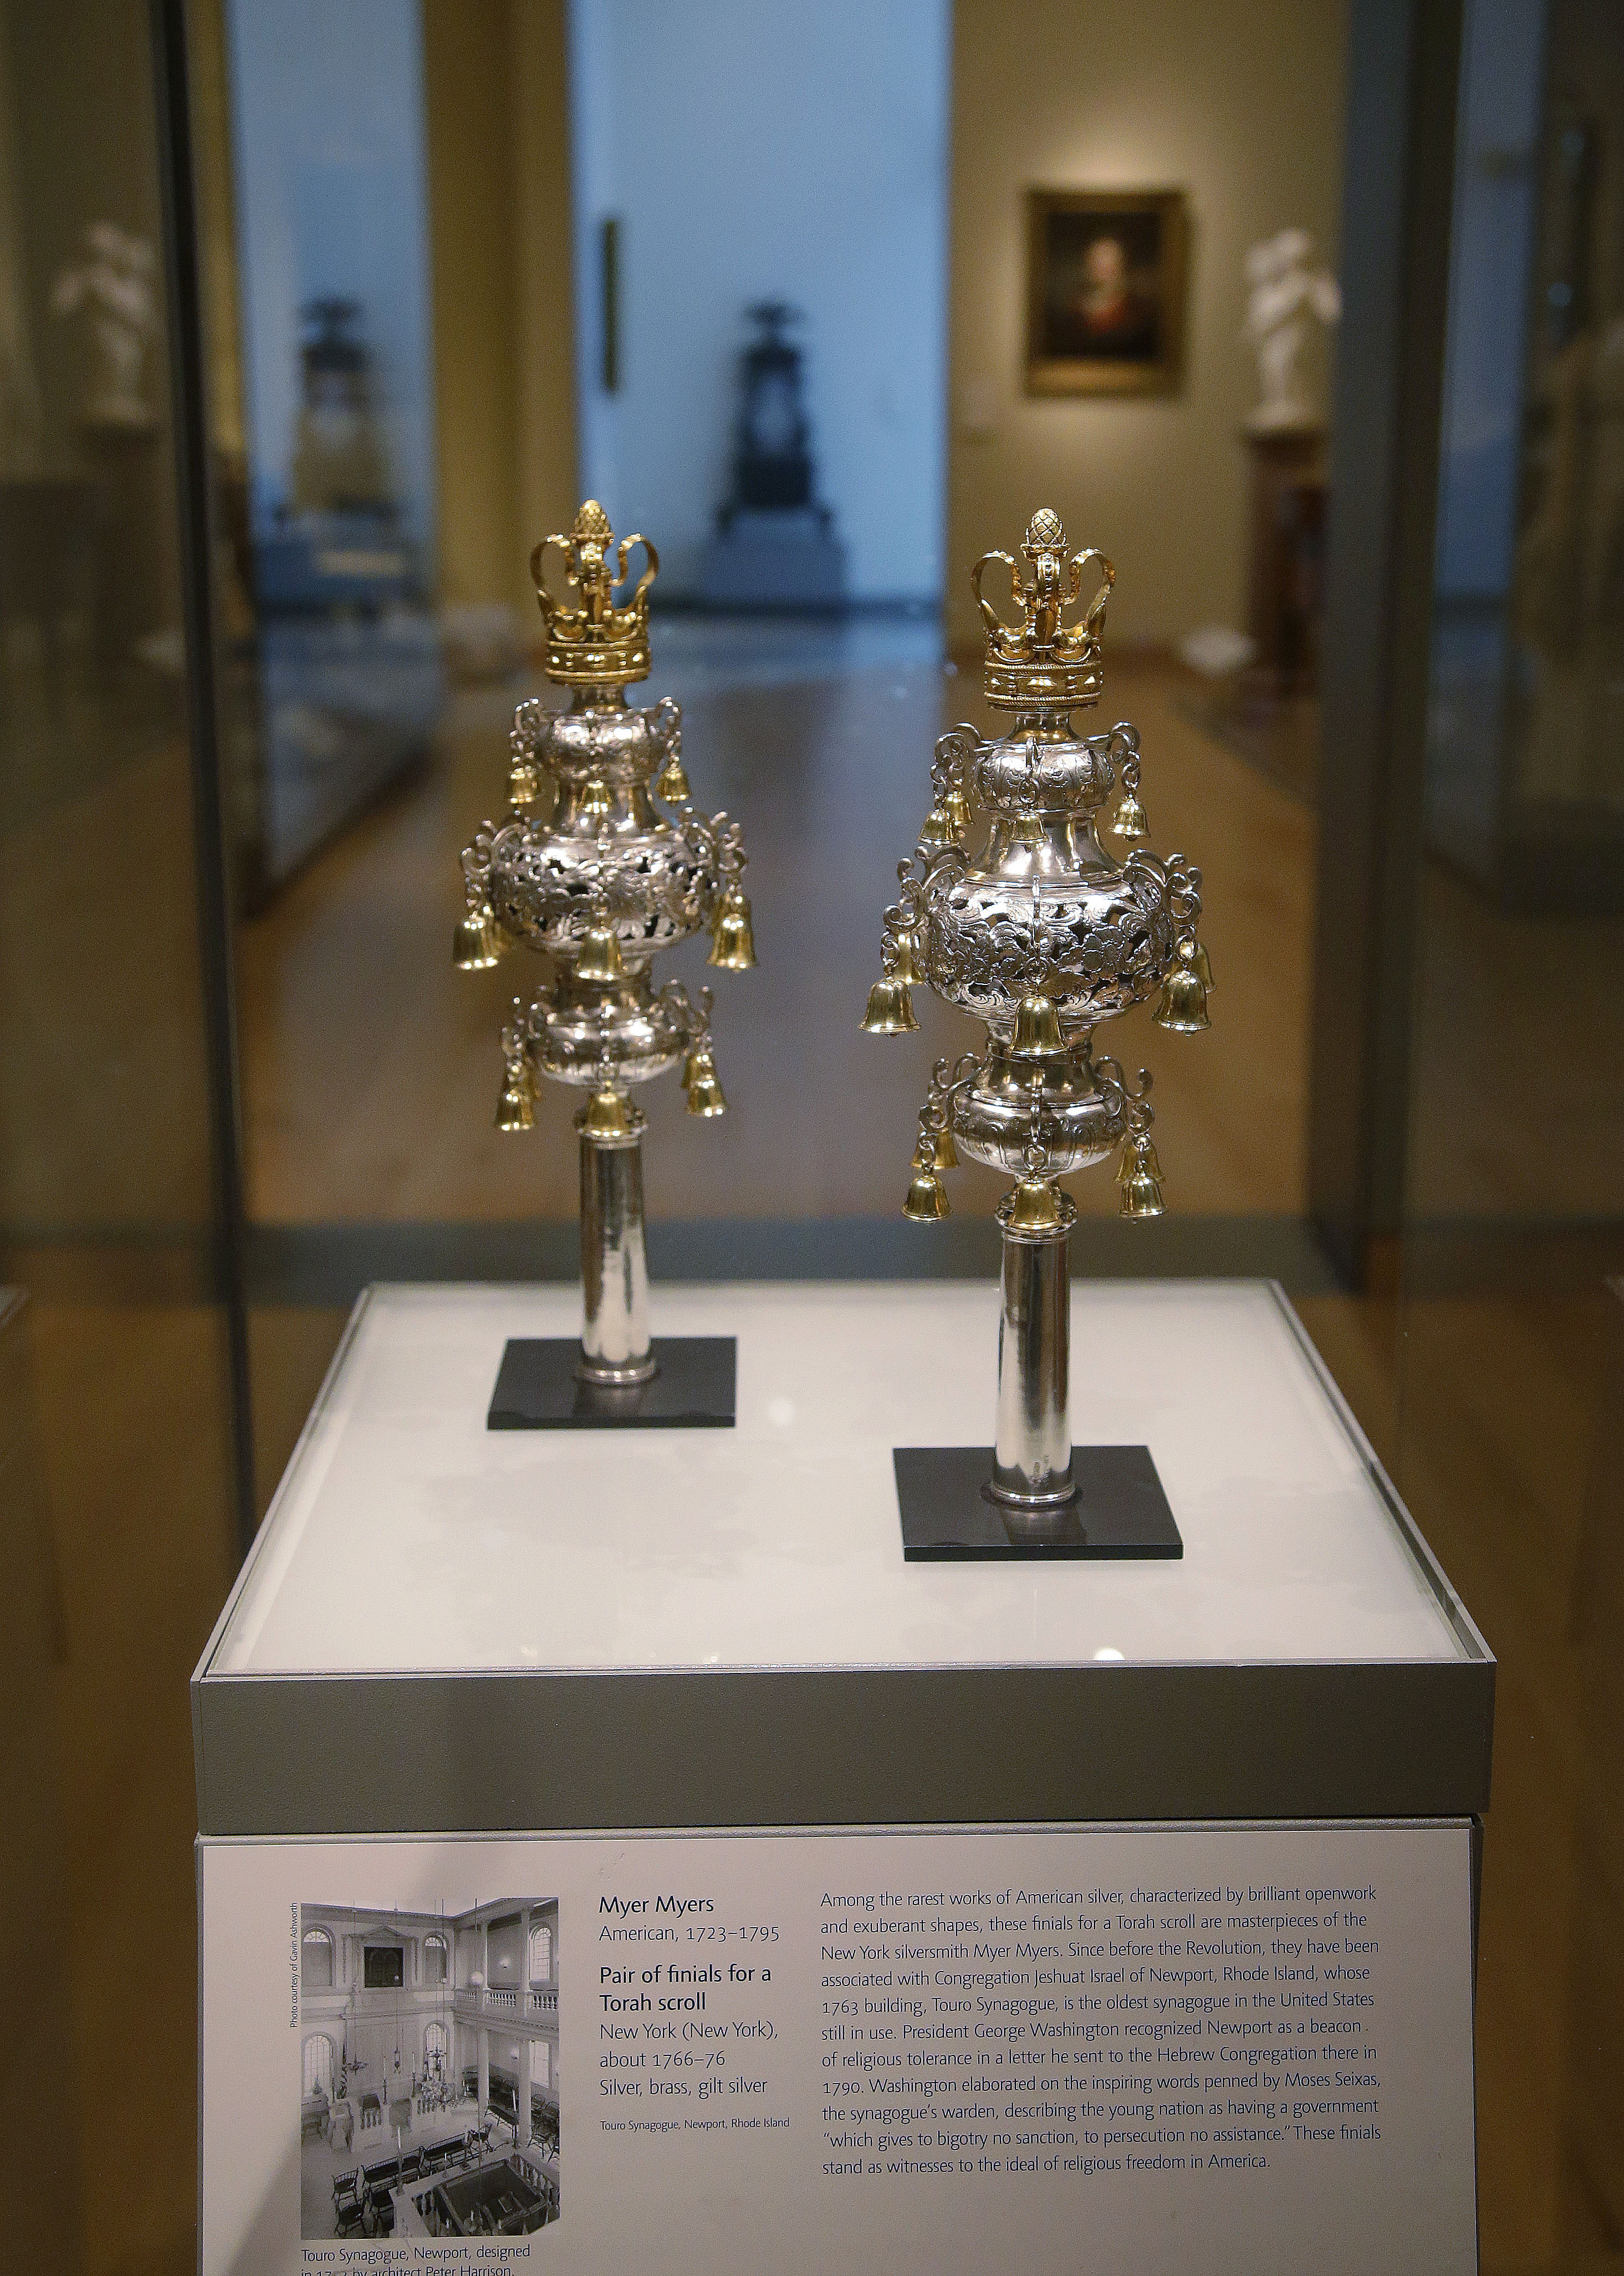 newport ri trial wraps up in fight for oldest us synagogue file in this 1 2015 file photo ceremonial bells belonging to